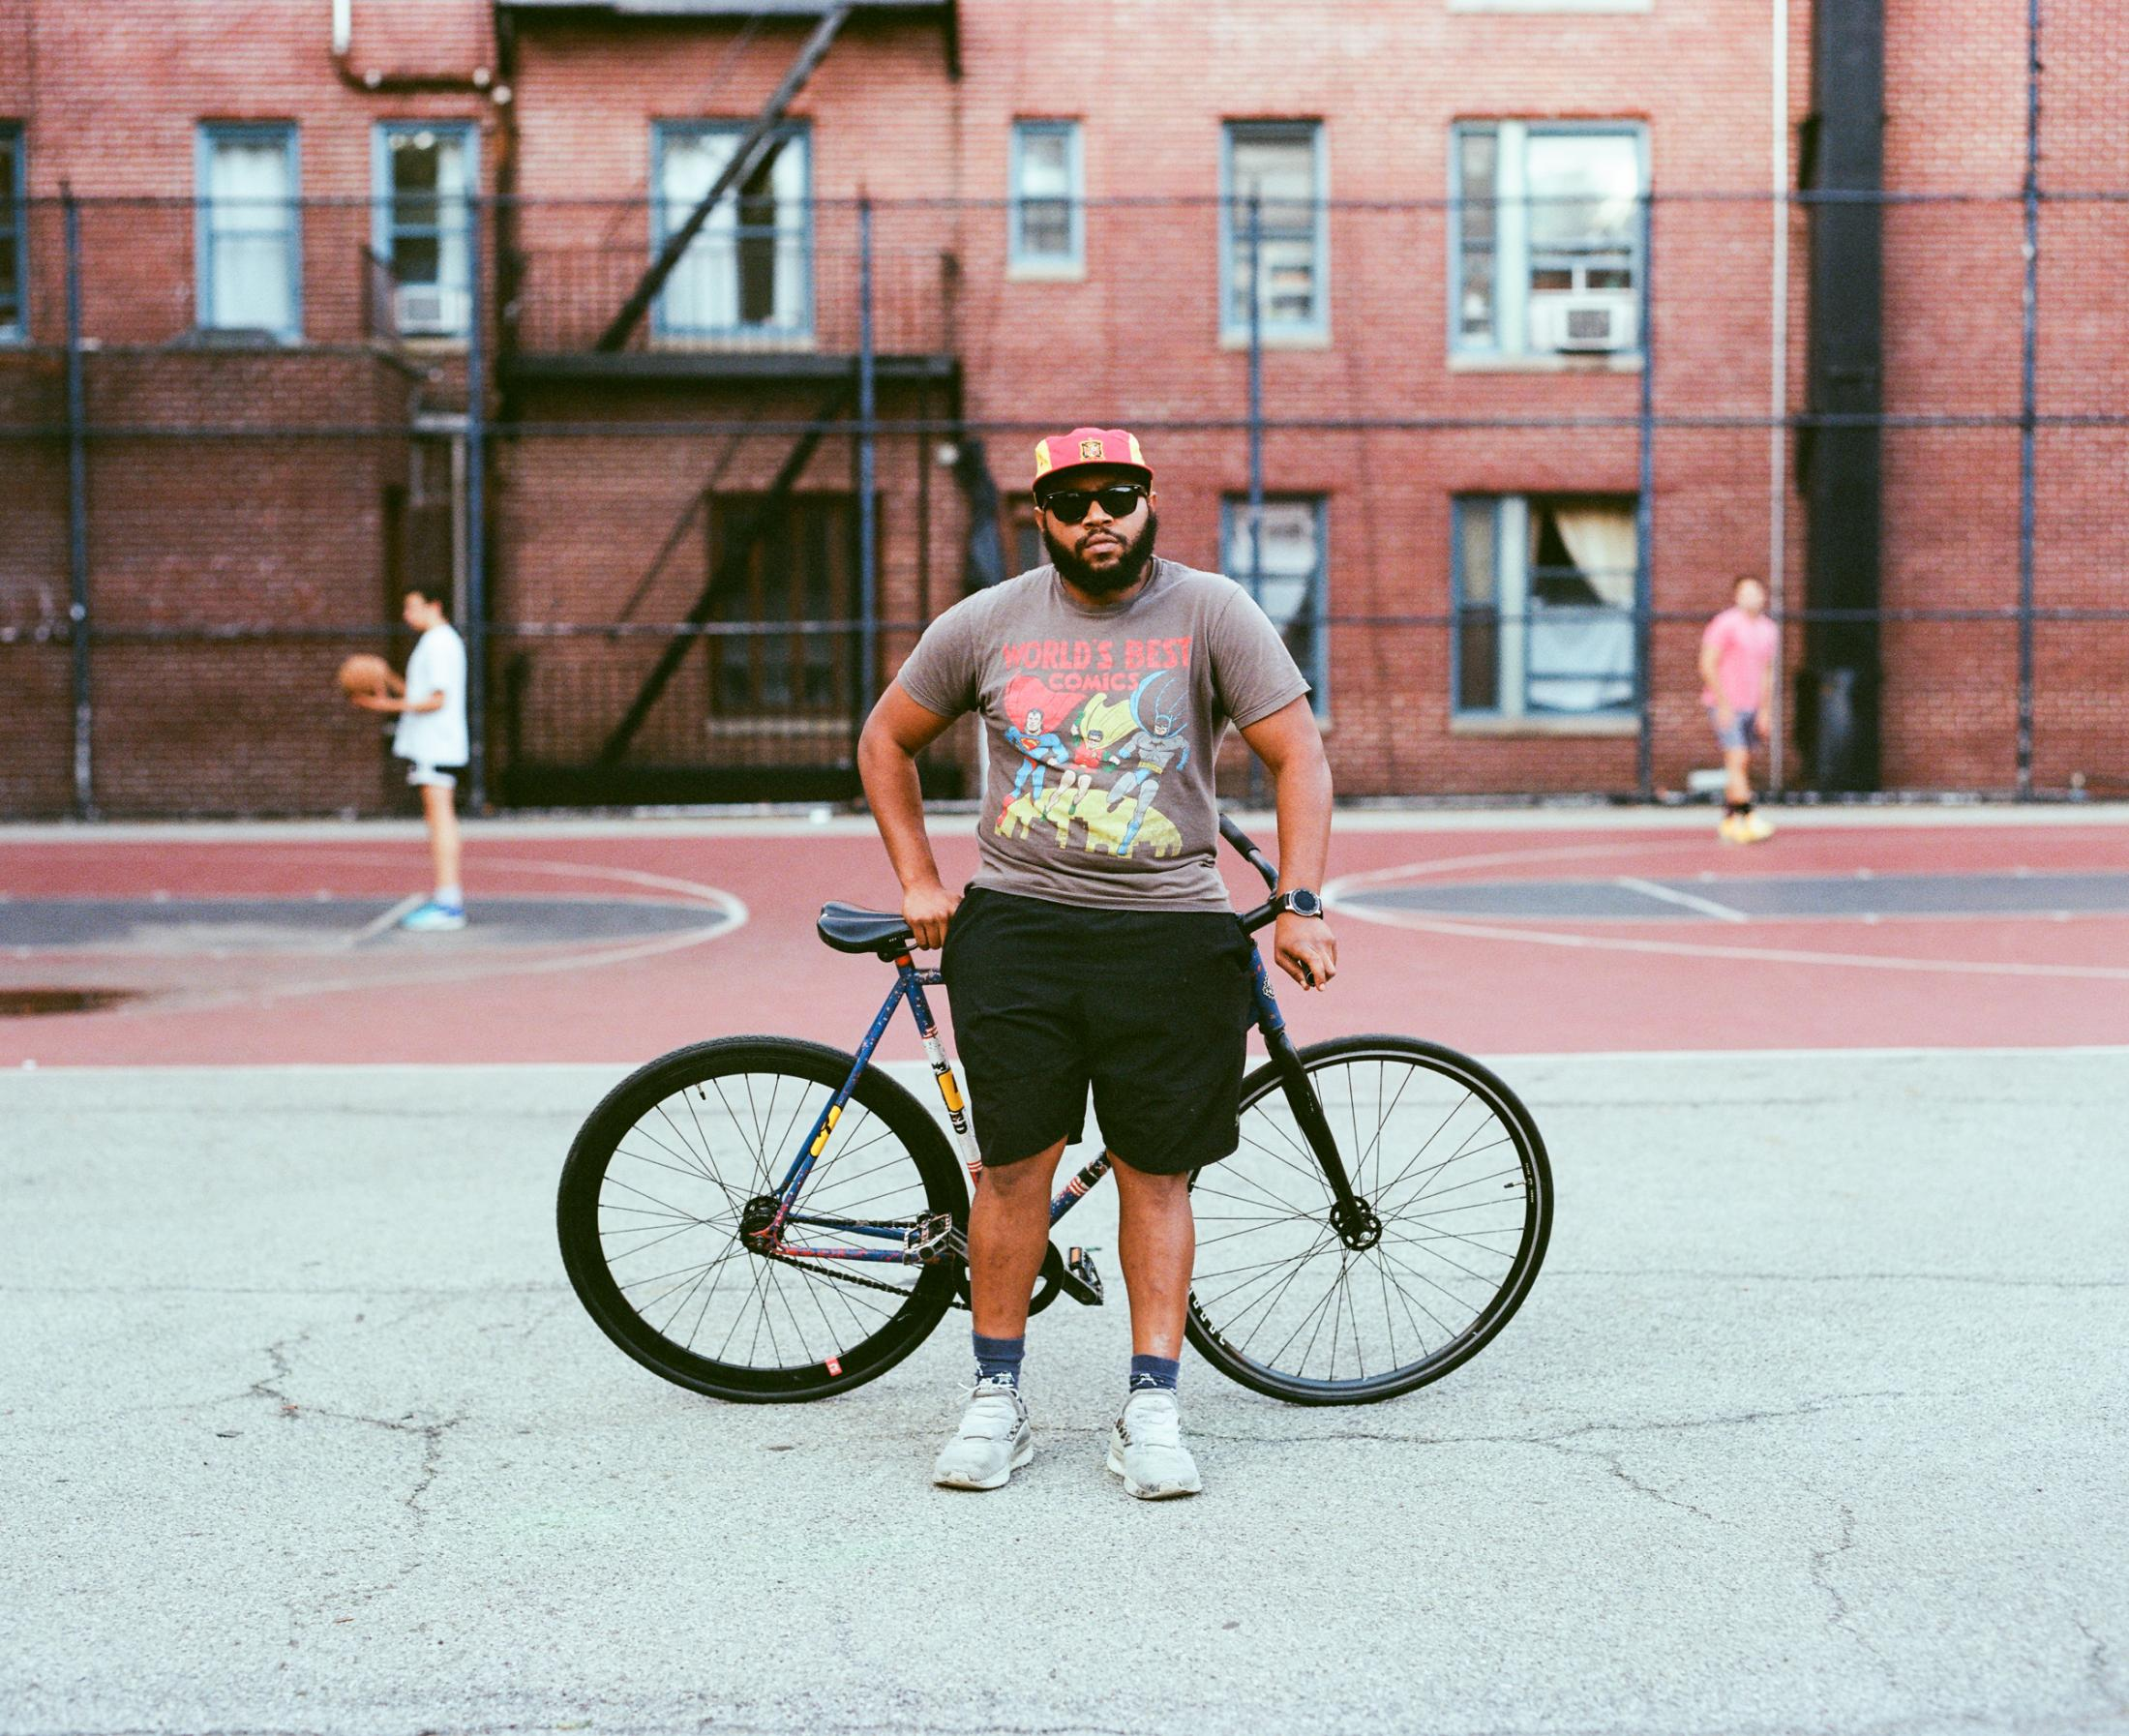 Bobby Fisher on September 27, 2019 in NYC. Photo essay on Bike Messengers.